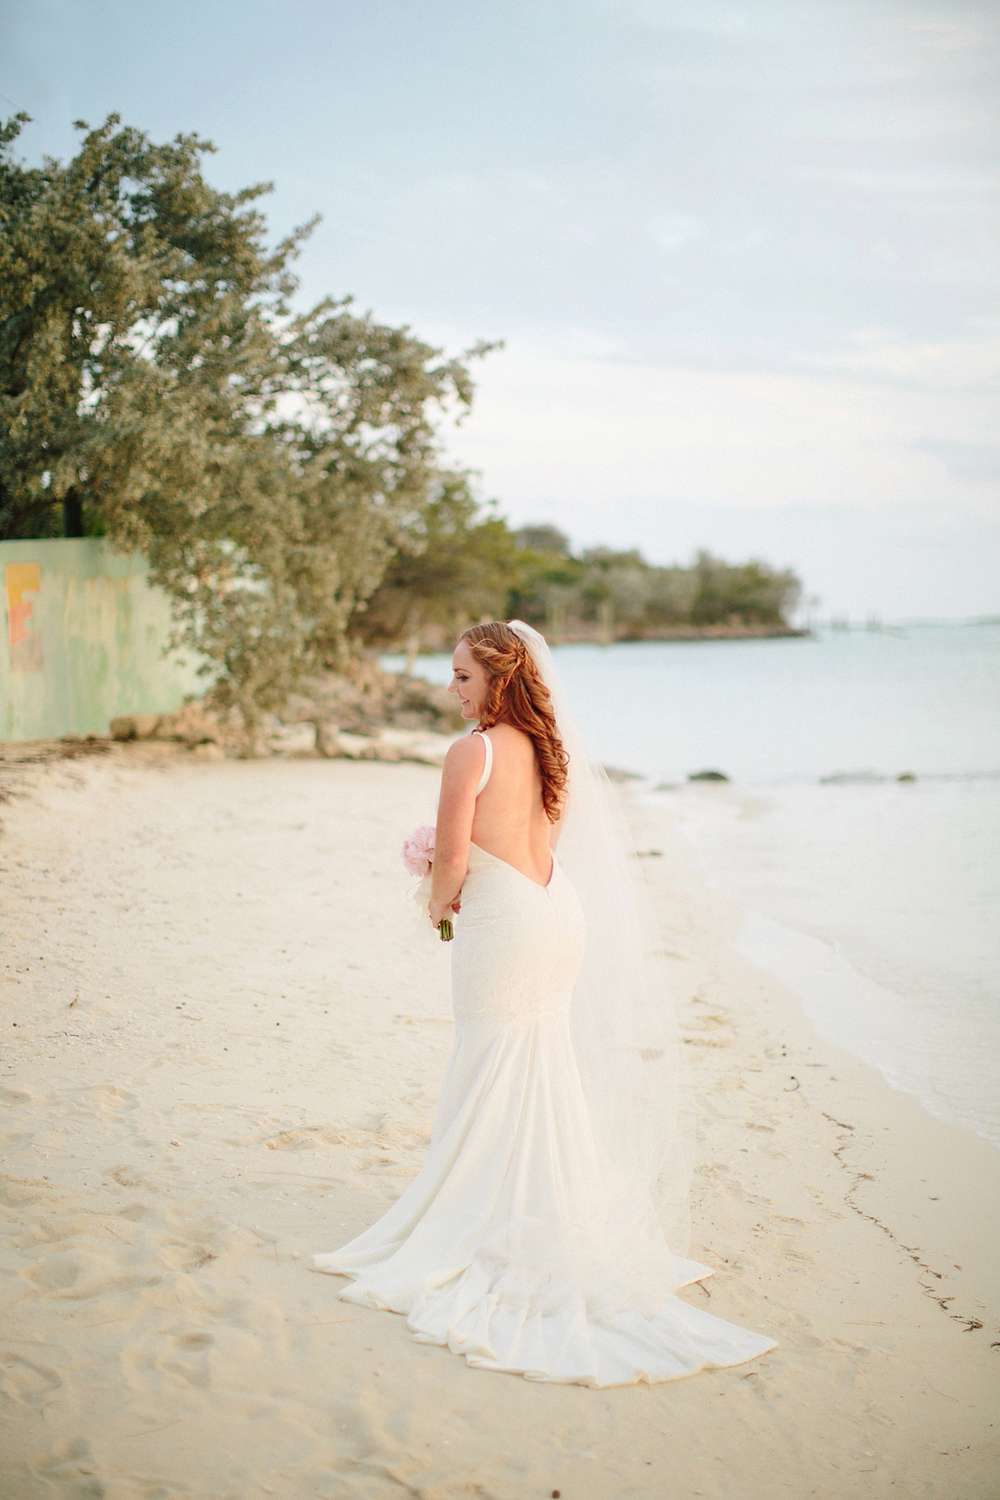 bahamas-destination-wedding-photographer-island-private-ceremony-staniel-cay_0039.jpg